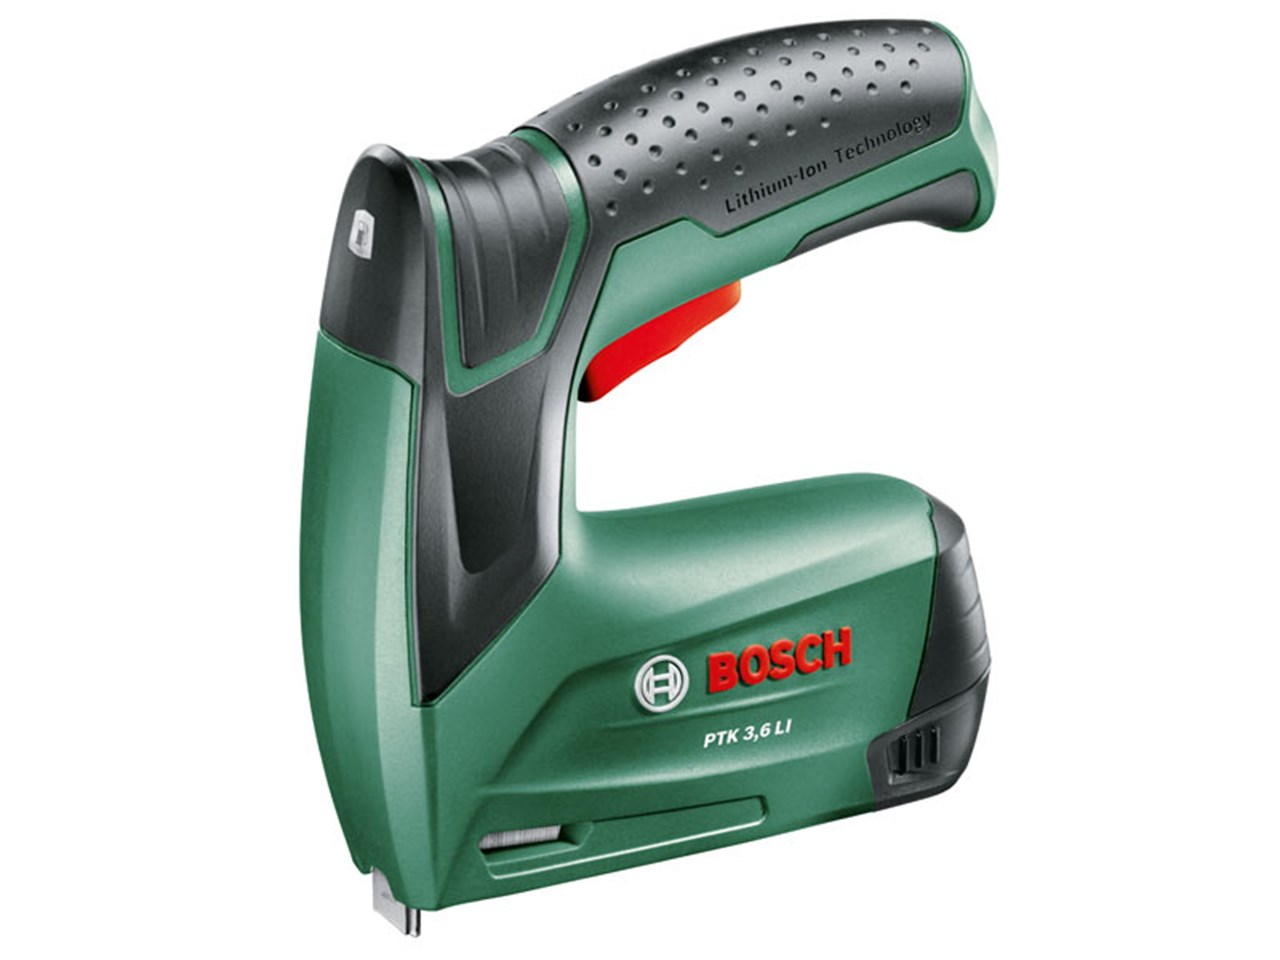 bosch green ptk 3 6 li cordless tacker. Black Bedroom Furniture Sets. Home Design Ideas